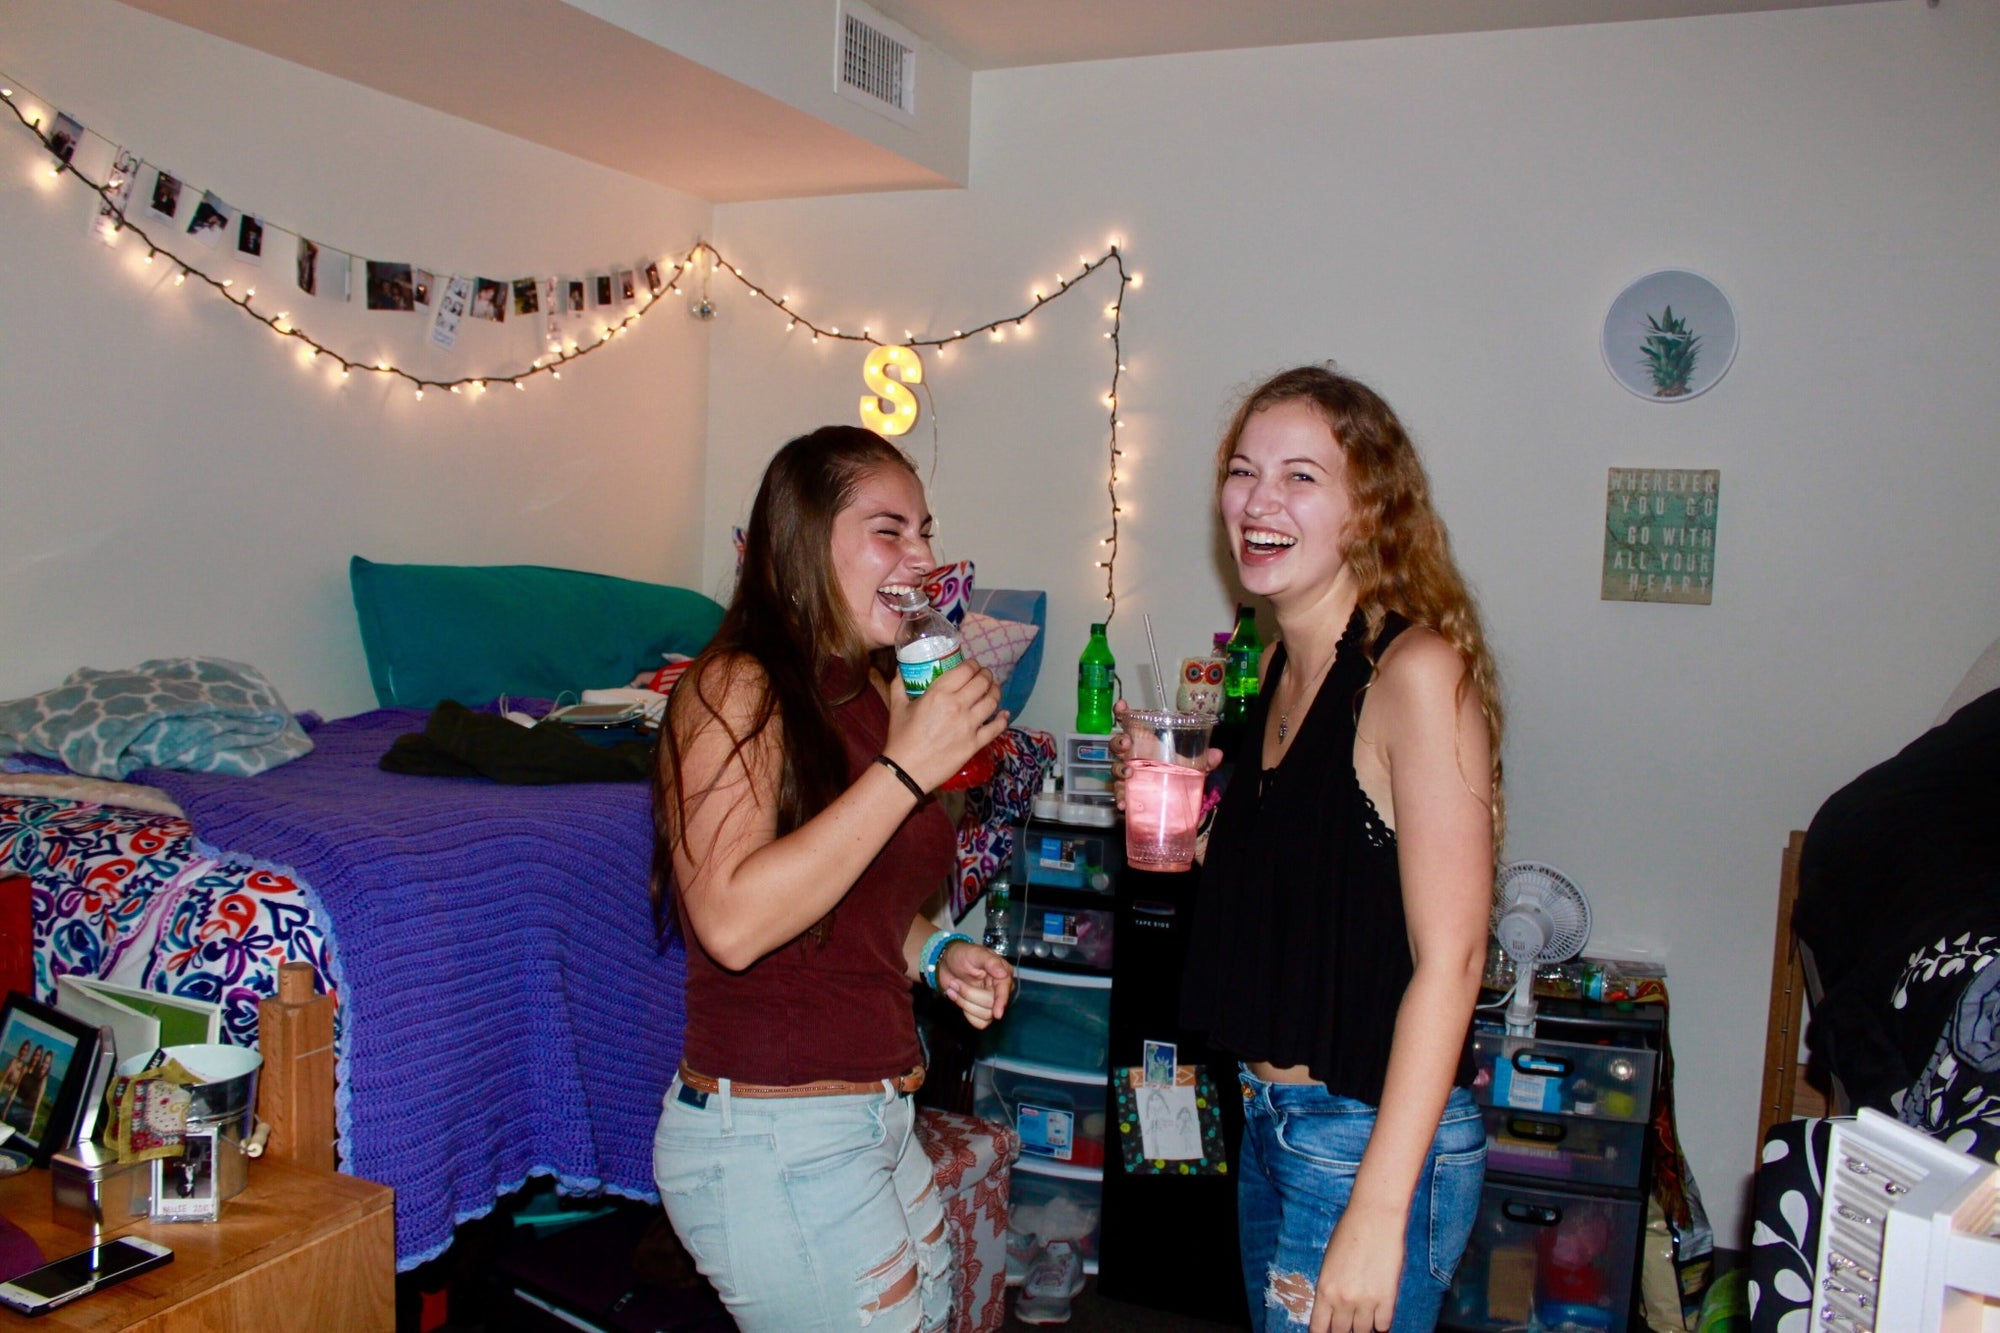 5 Tips for College Freshman They Don't Tell You About